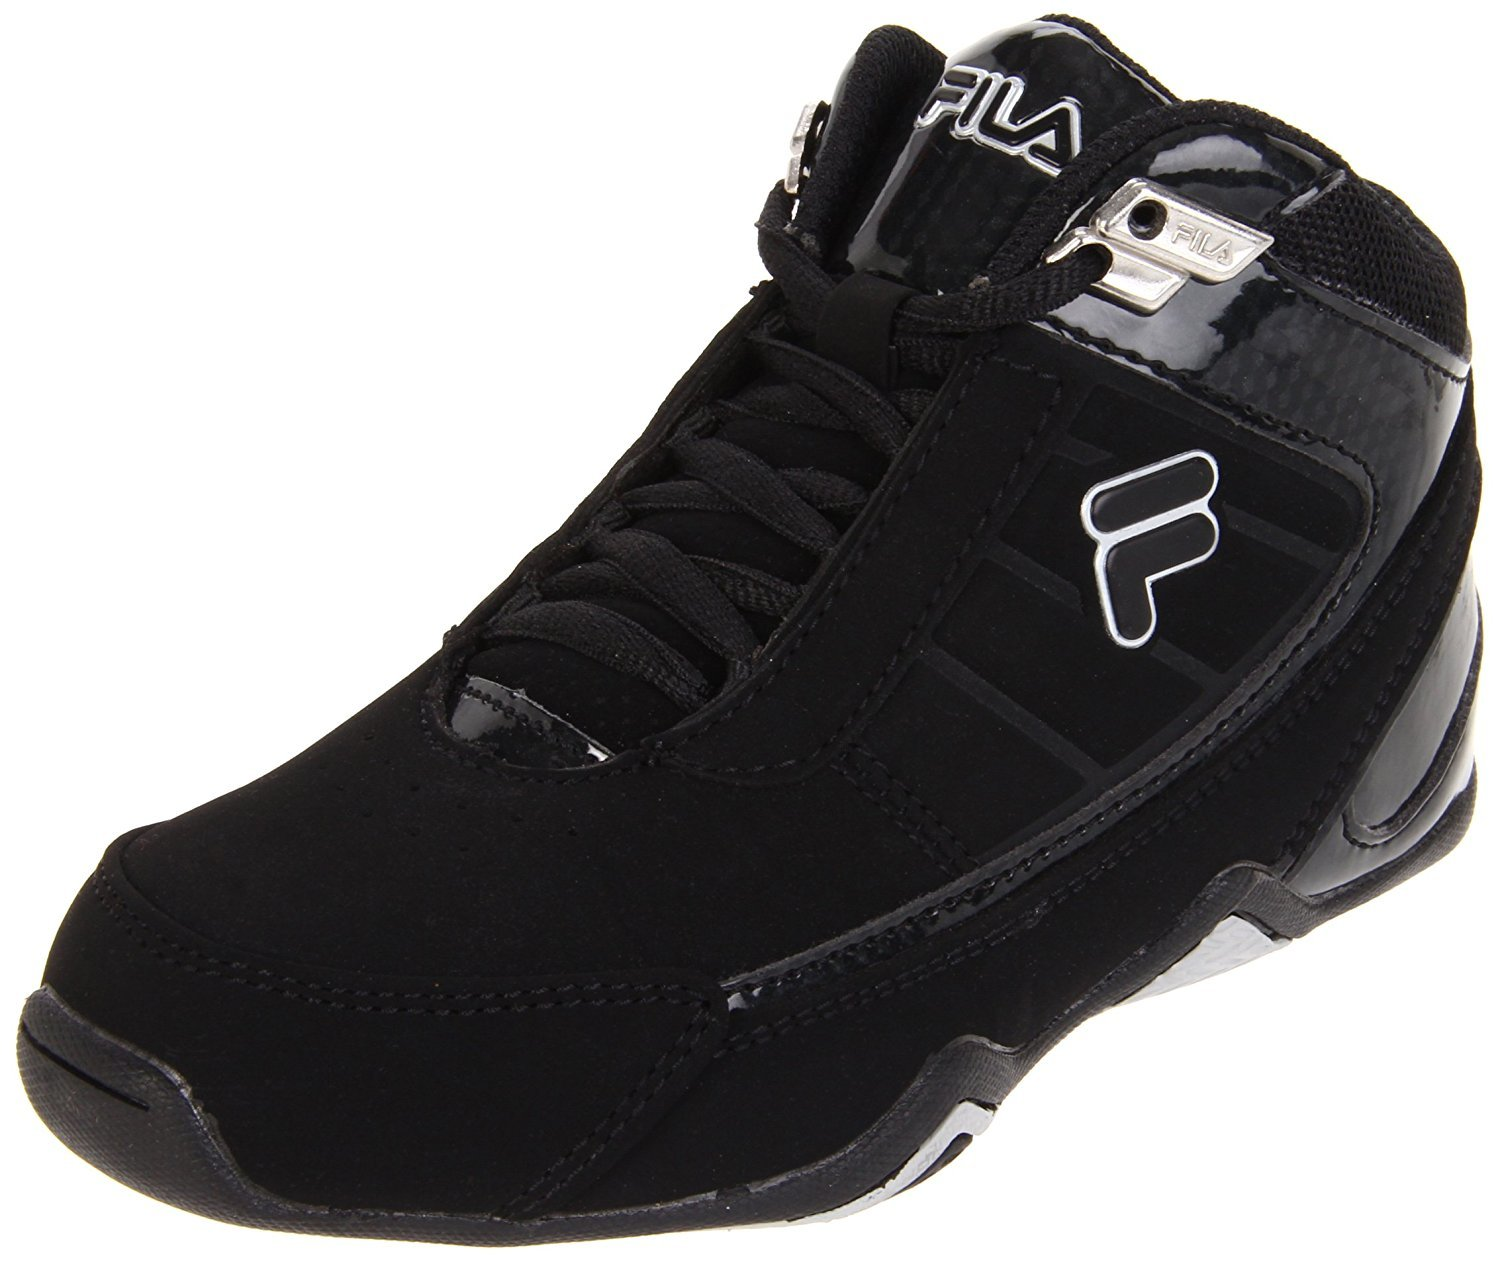 Click here to buy Fila CHANGE THE GAME Kids Black Metallic Silver High Top Athletic Basketball Sneakers Shoes.